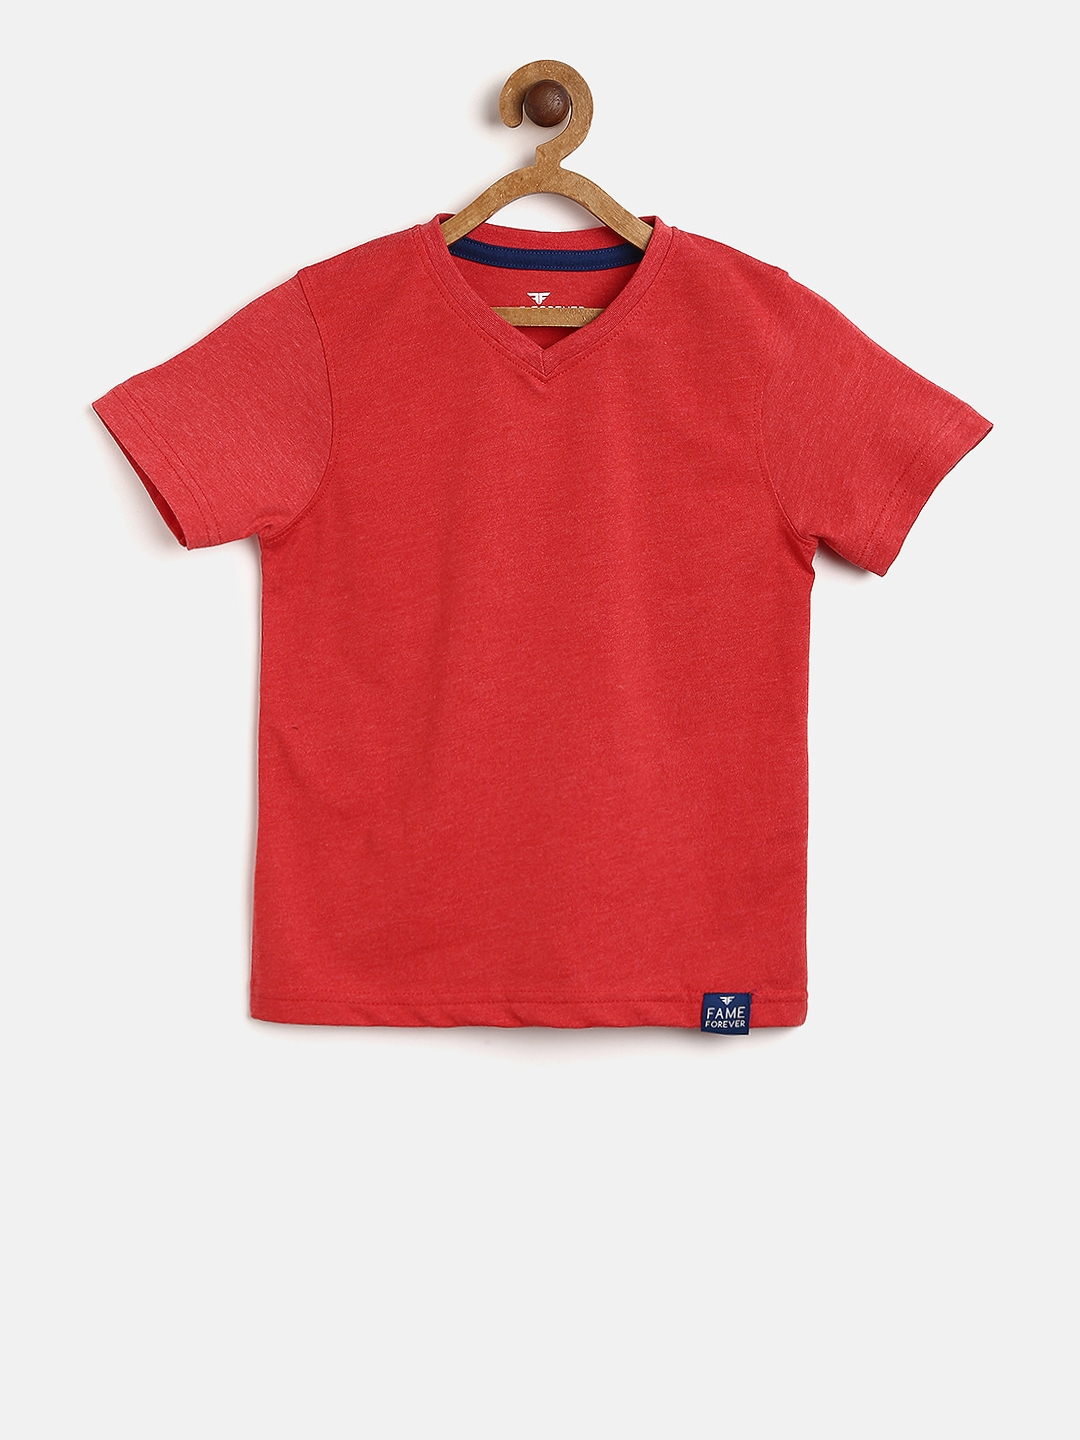 379c4ce2 Buy Fame Forever By Lifestyle Boys Red Solid V Neck T Shirt ...